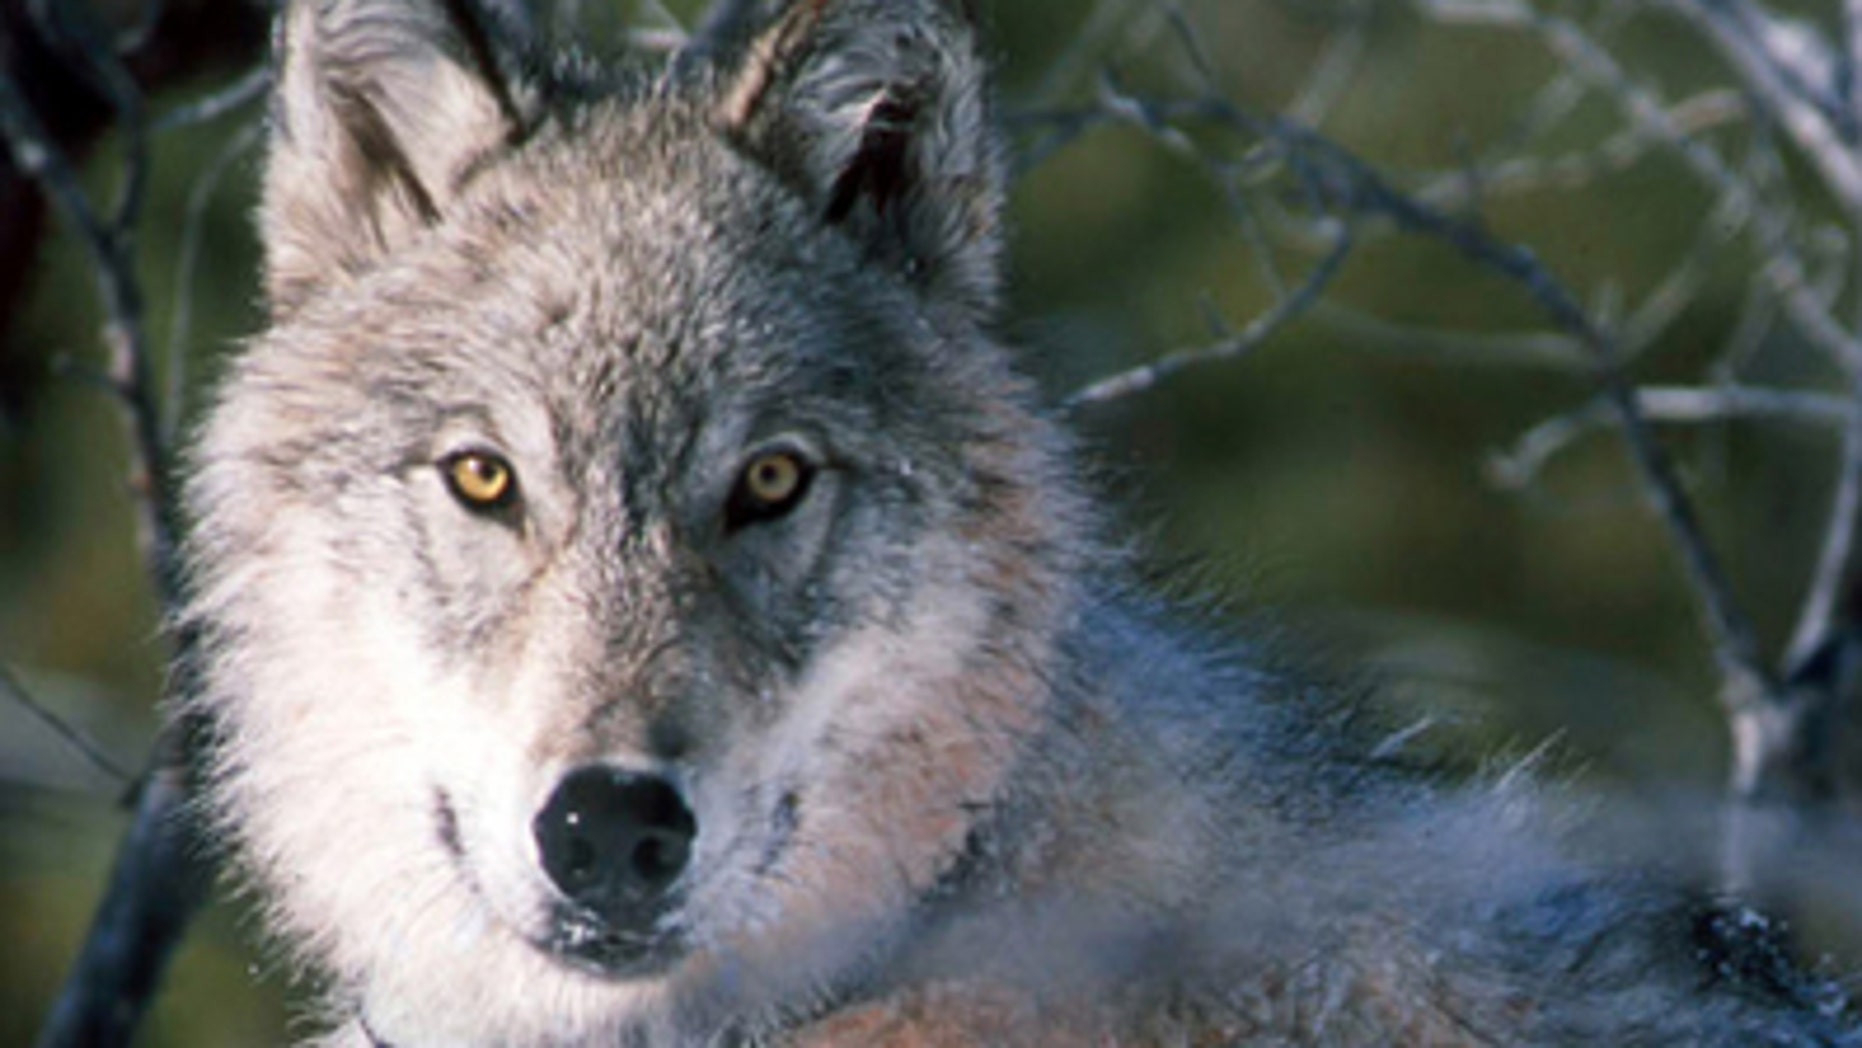 This Jan. 9, 2003 file photo shows a gray wolf watching biologists in Yellowstone National Park in Wyoming, after being captured and fitted with a radio collar.